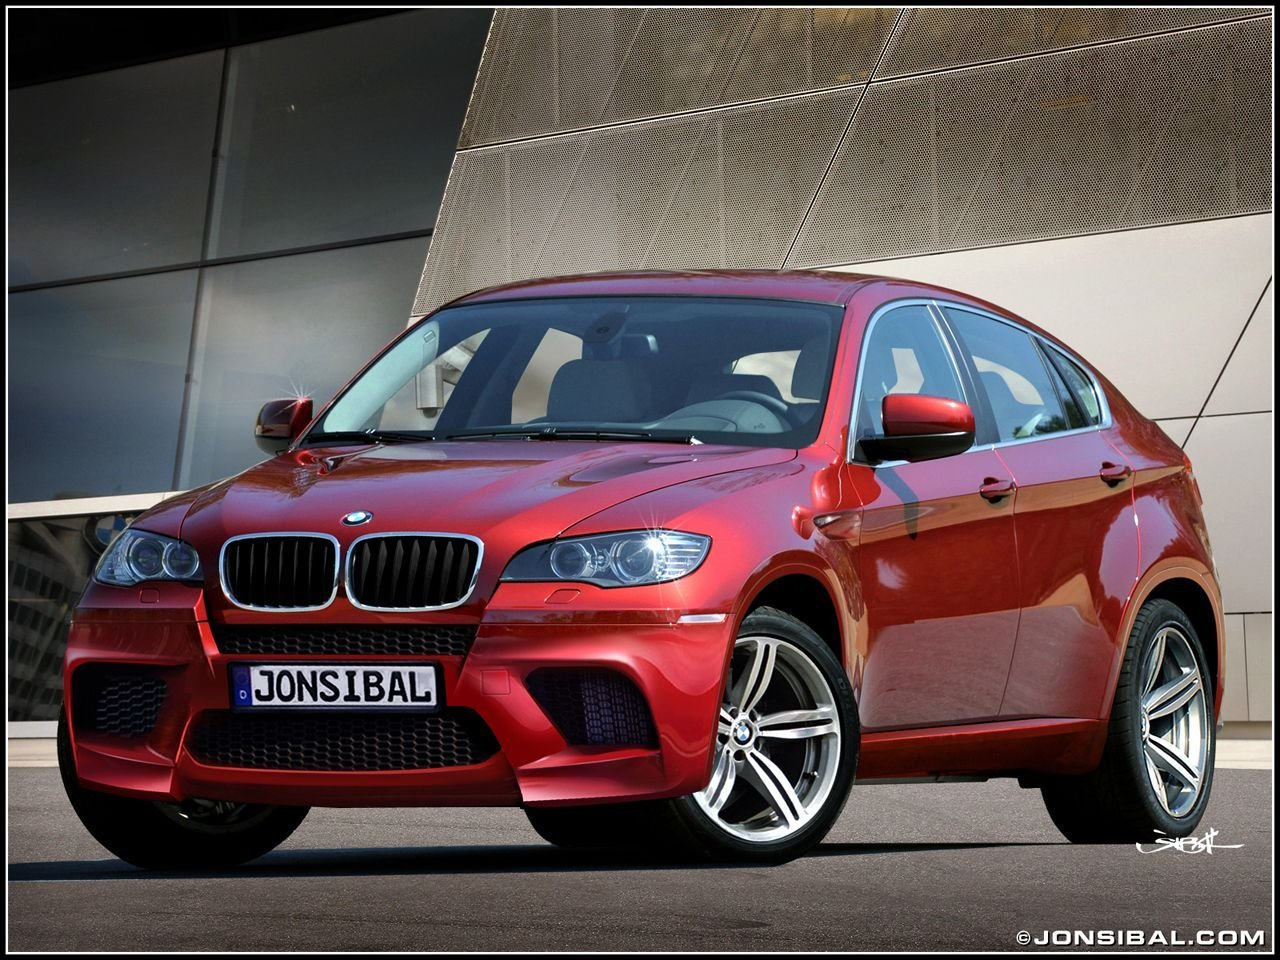 New Bmw X6M In Metallic Ruby Red With Black Leather Interior On This Month